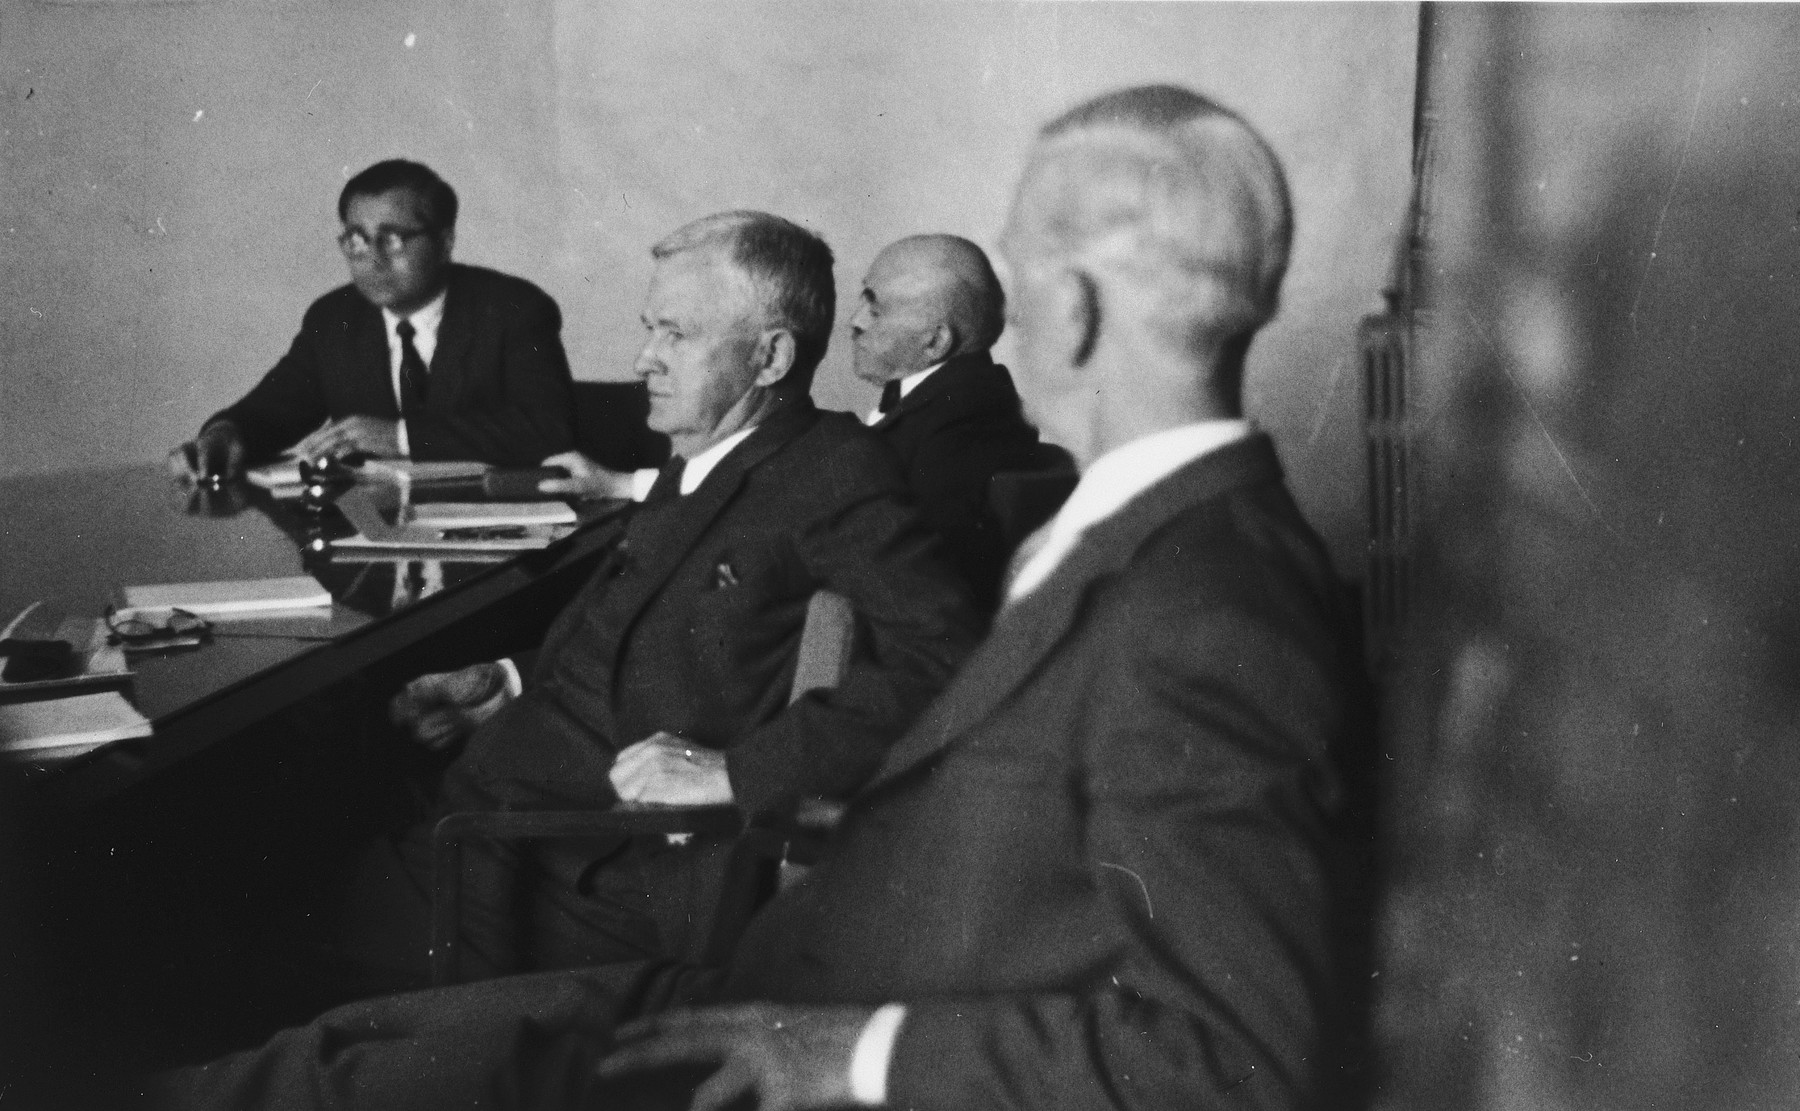 Members of the Anglo-American Committee of Inquiry on Palestine attend a hearing at the YMCA building in Jerusalem.  Among those pictured are James G. McDonald (foreground, right) and Judge Joseph Hutcheson, the American chairman (center, next to McDonald).